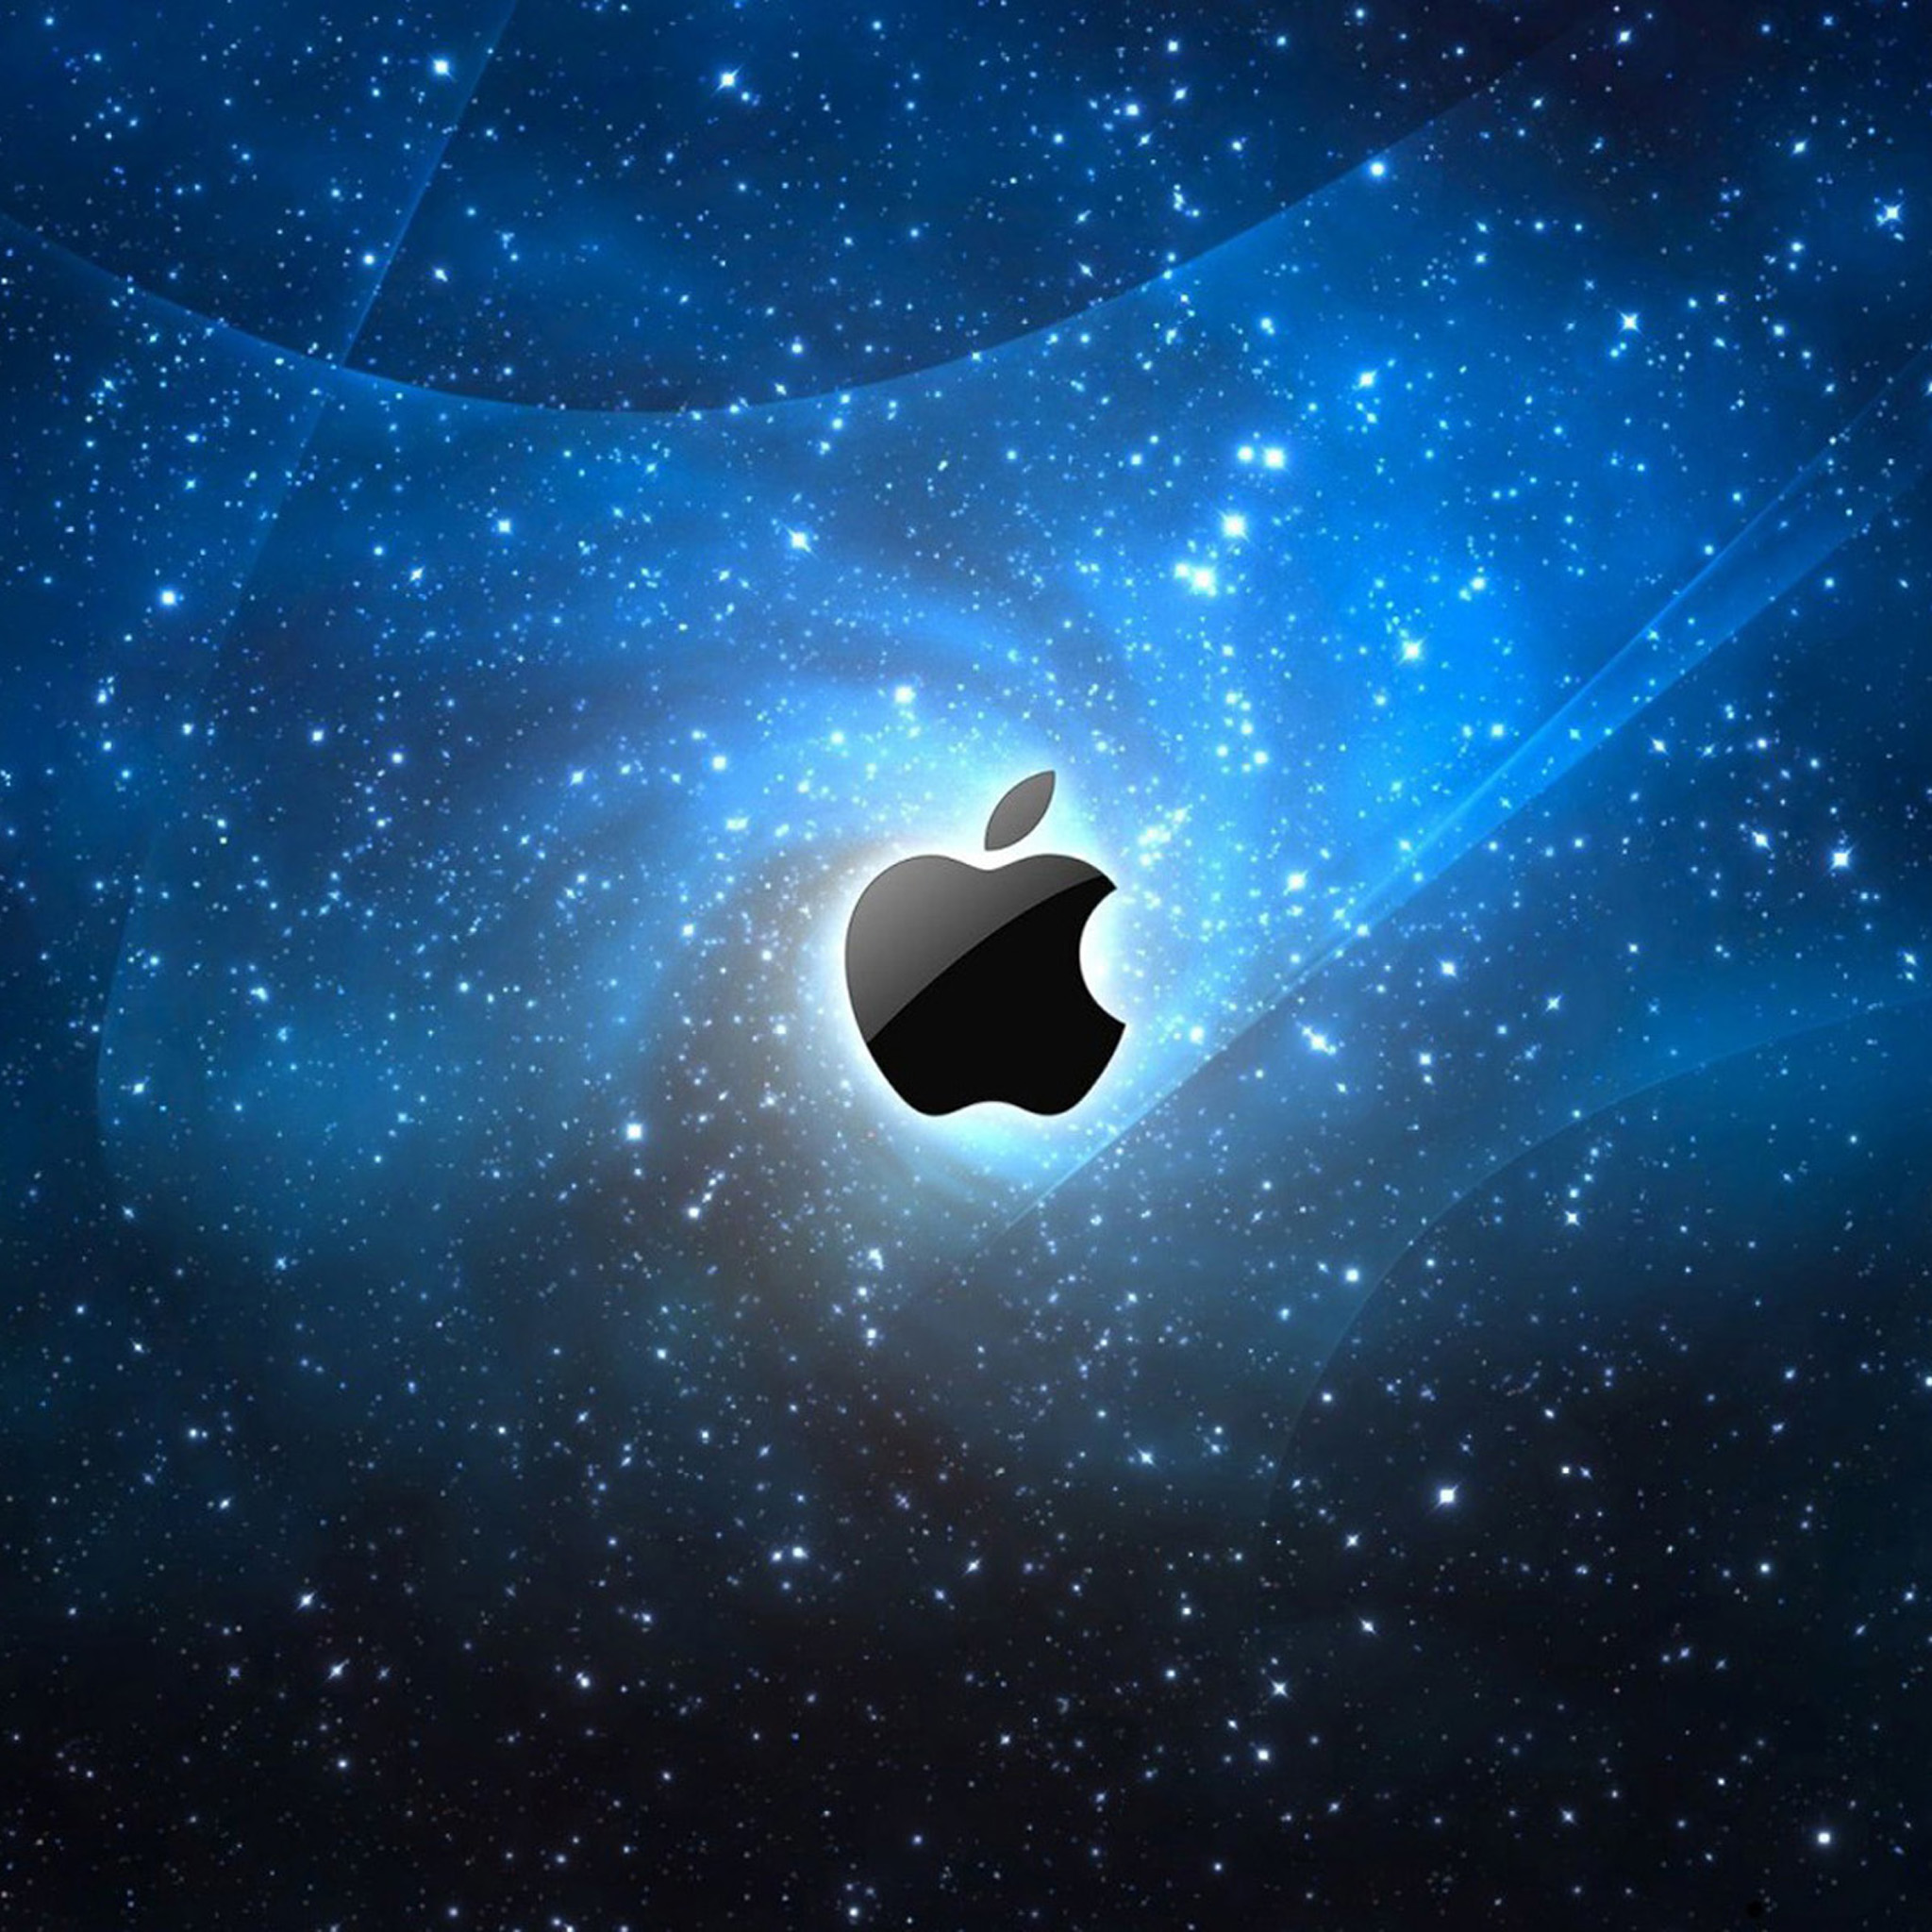 Space Apple iPad Air 2 Wallpapers iPad Air 2 Wallpapers 2048x2048